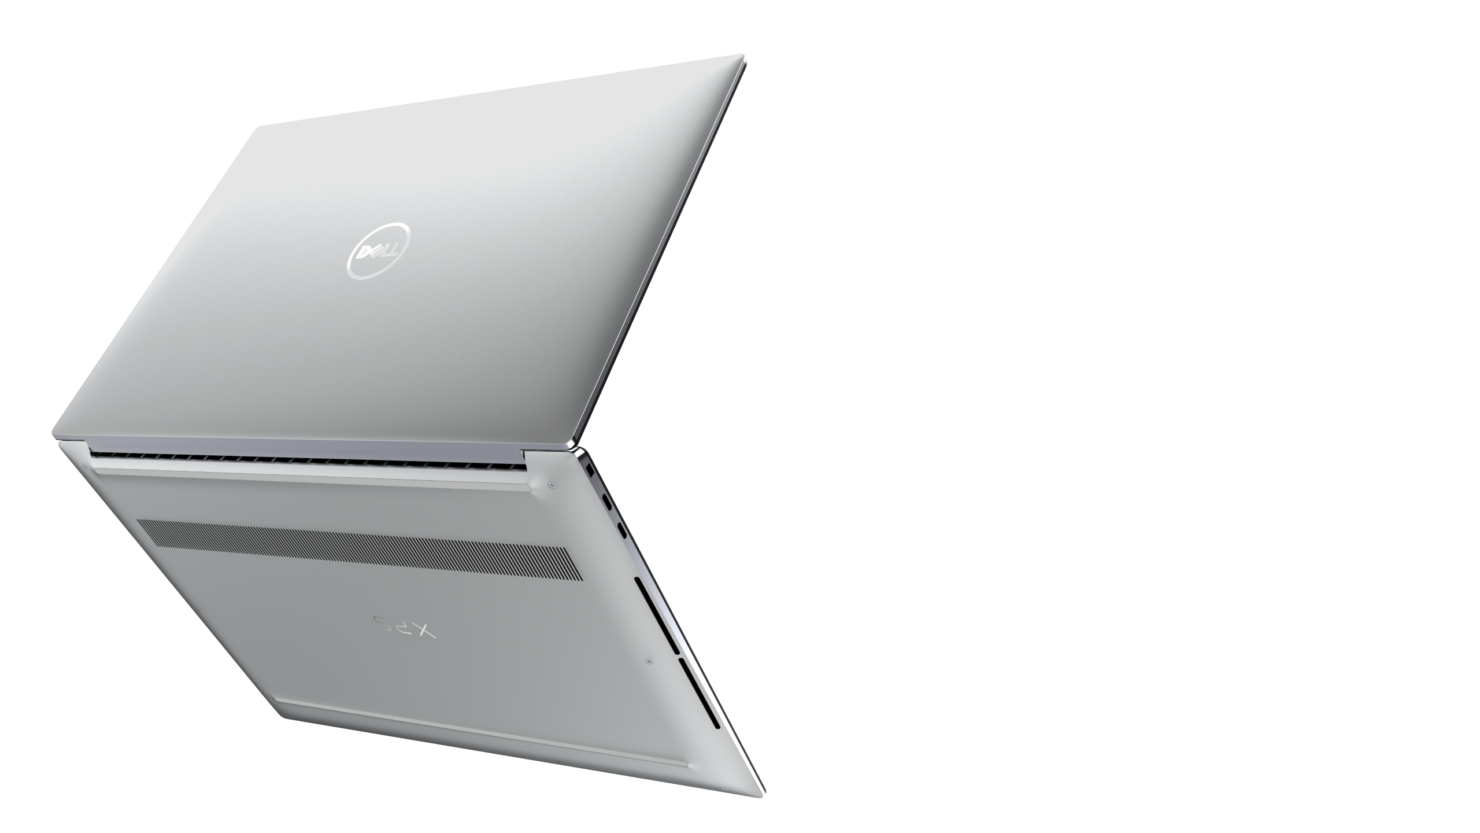 xps15_open_back_view_top_and_bottom-custom